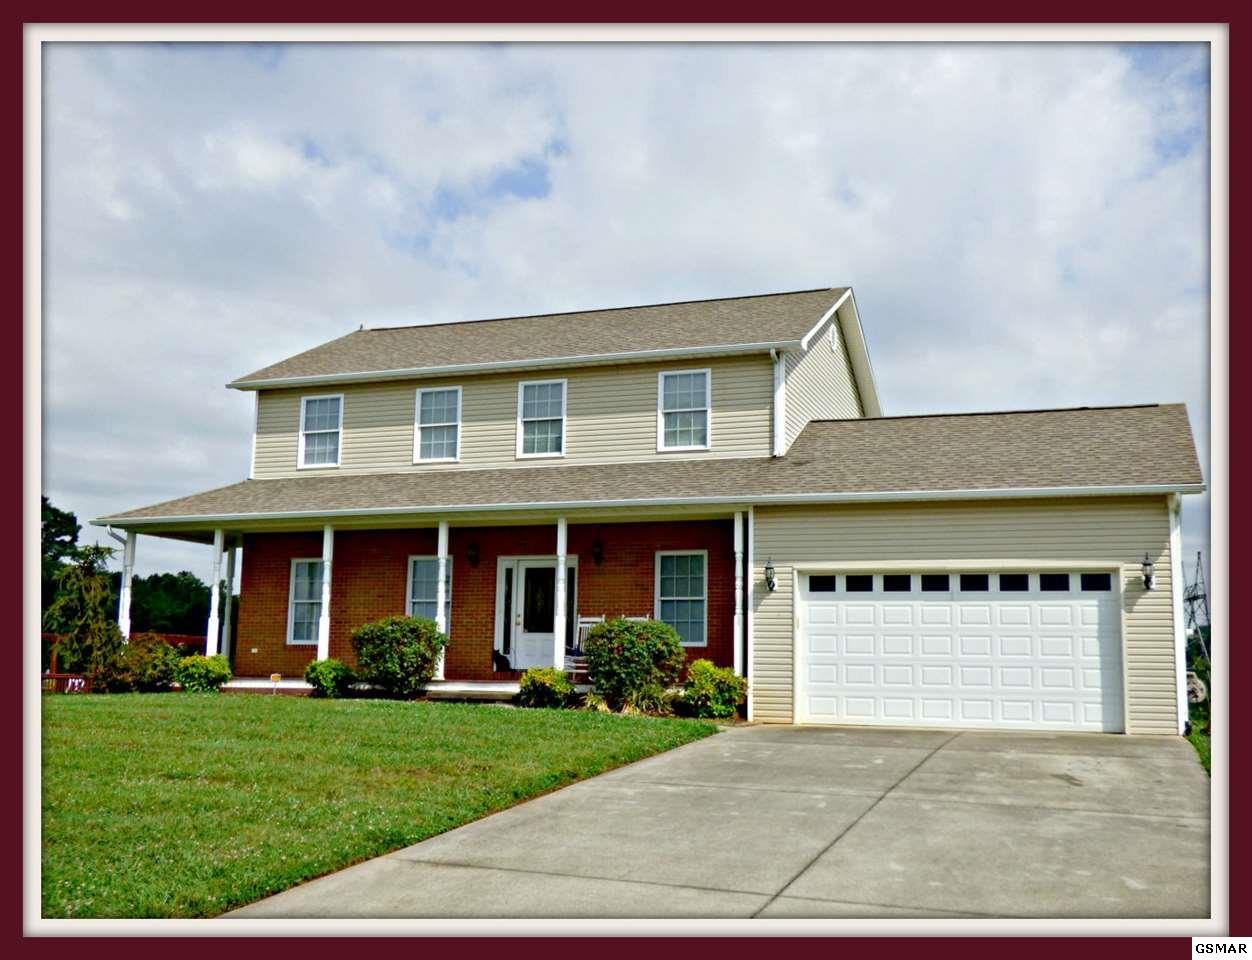 209 Vista View Ct., Dandridge, TN 37725